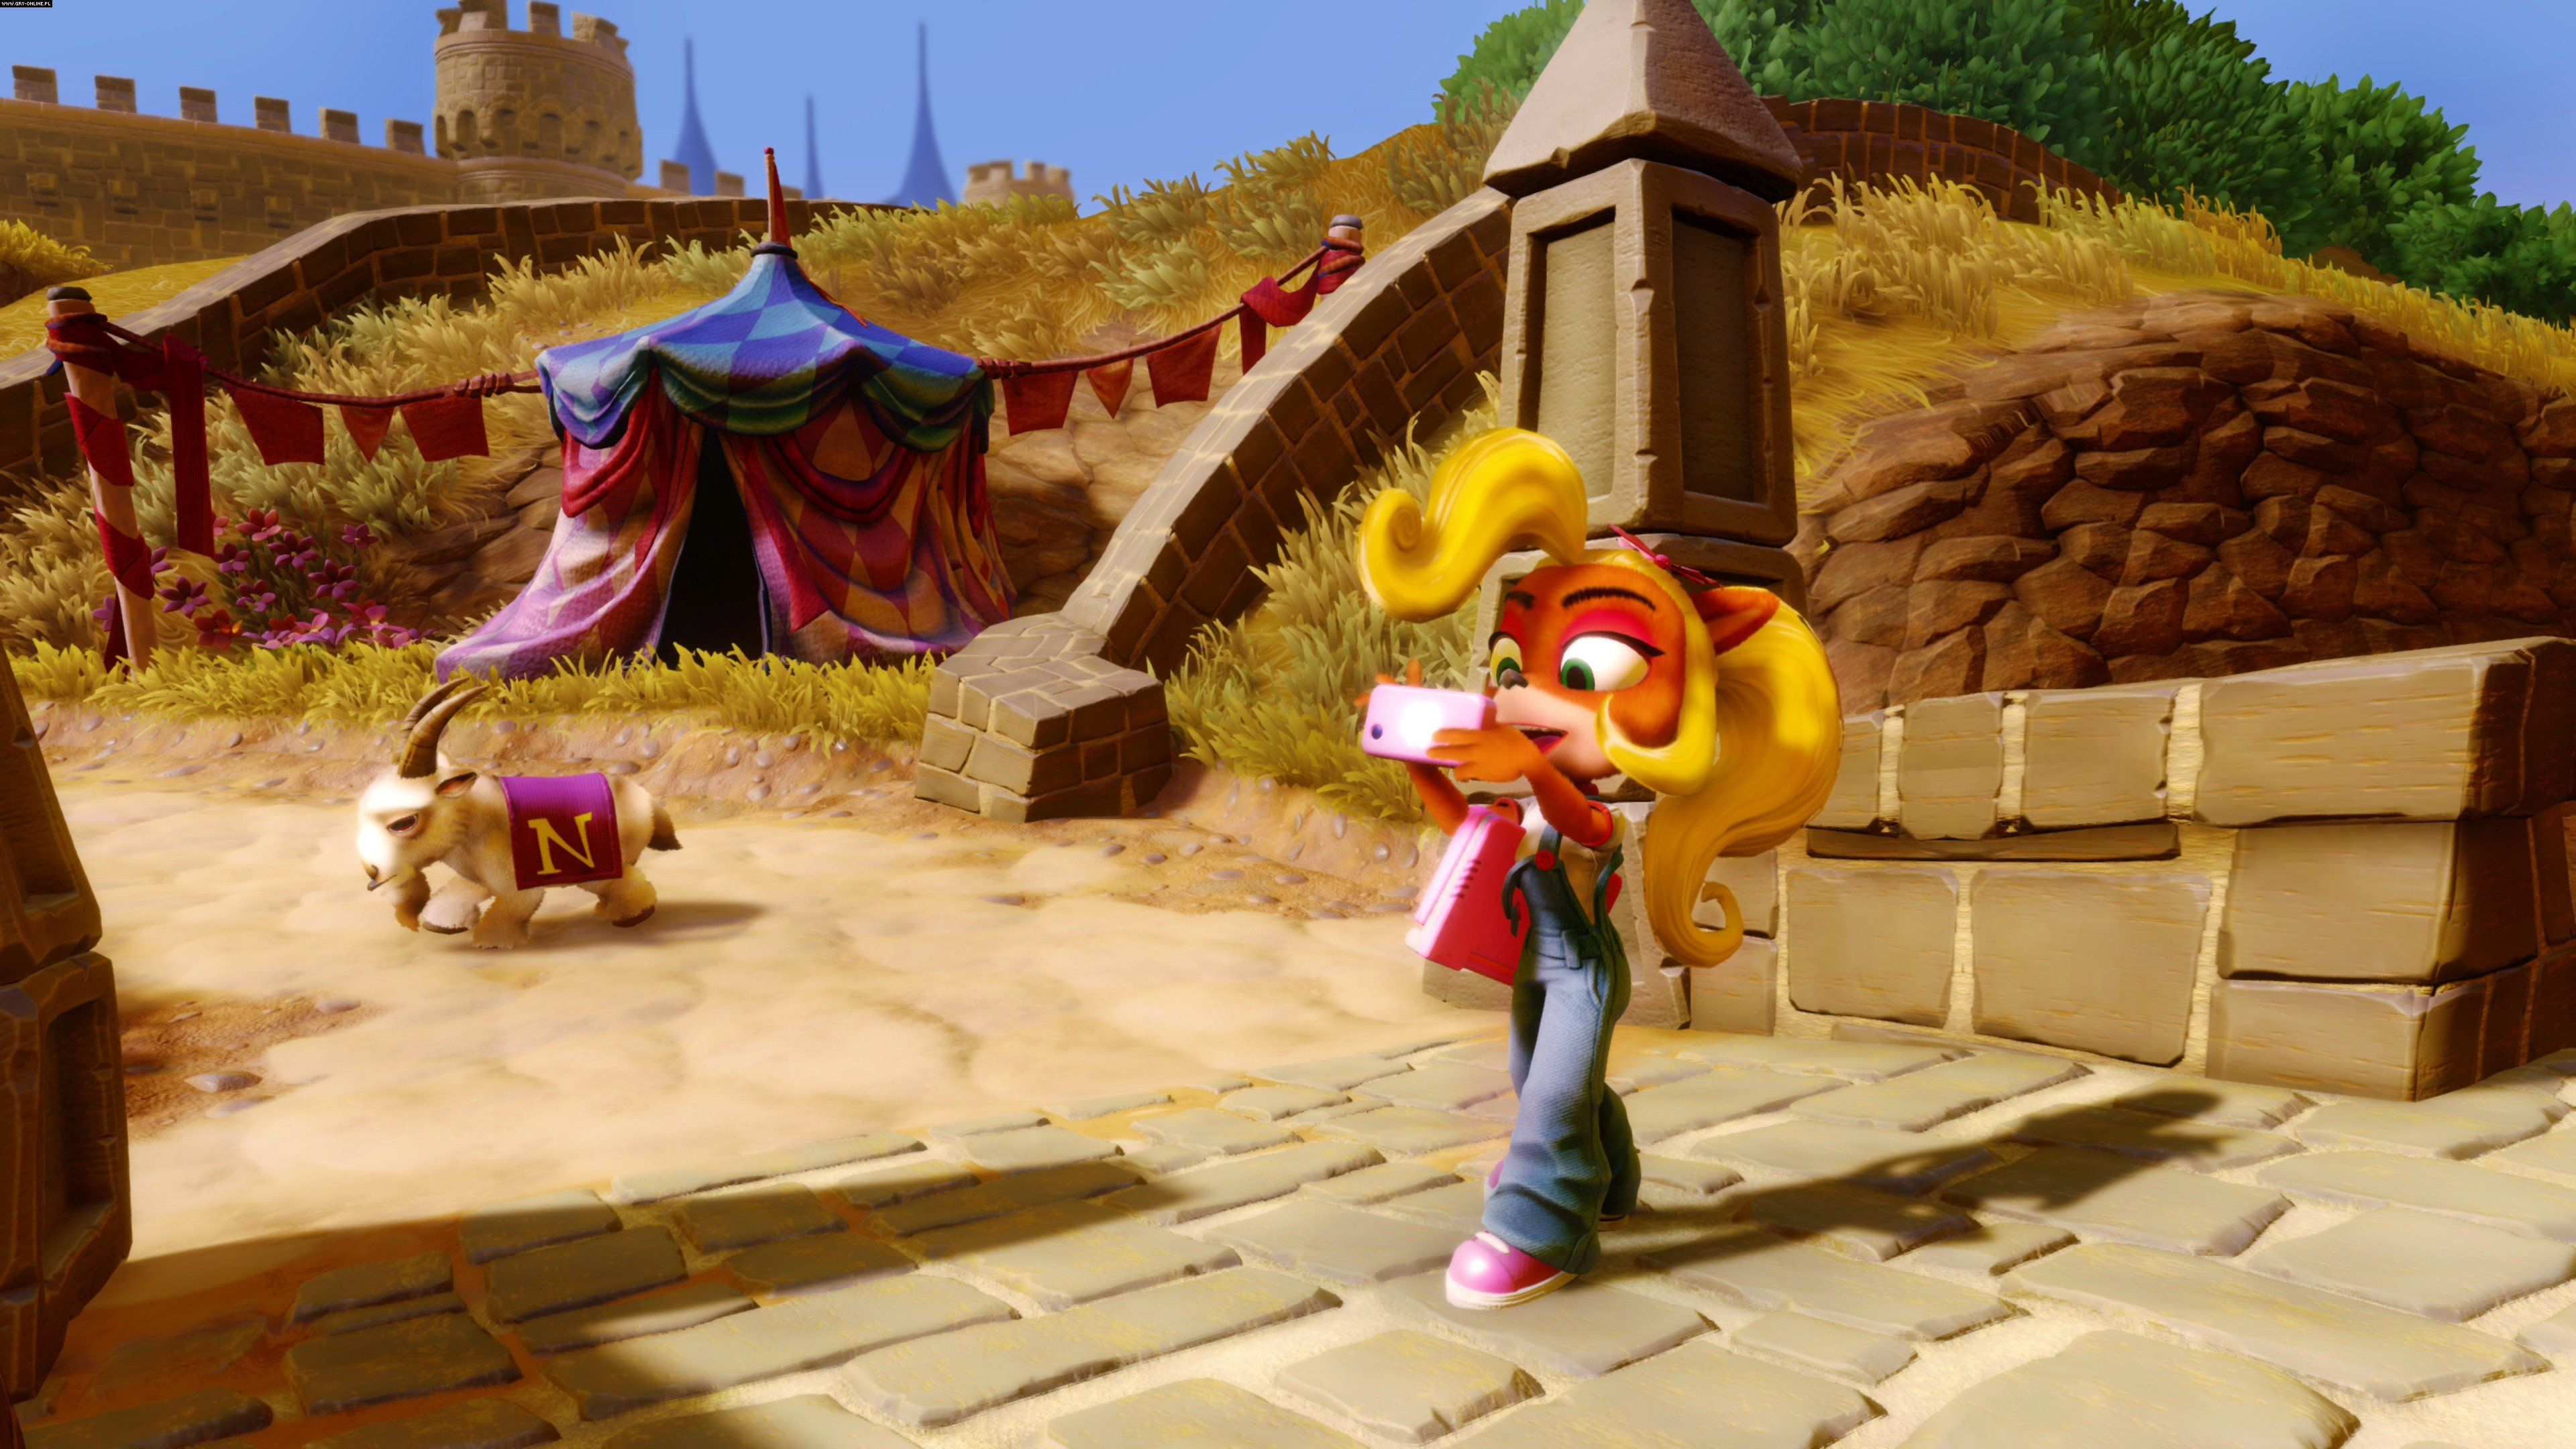 Crash Bandicoot N. Sane Trilogy PS4 Games Image 7/49, Vicarious Visions, Activision Blizzard